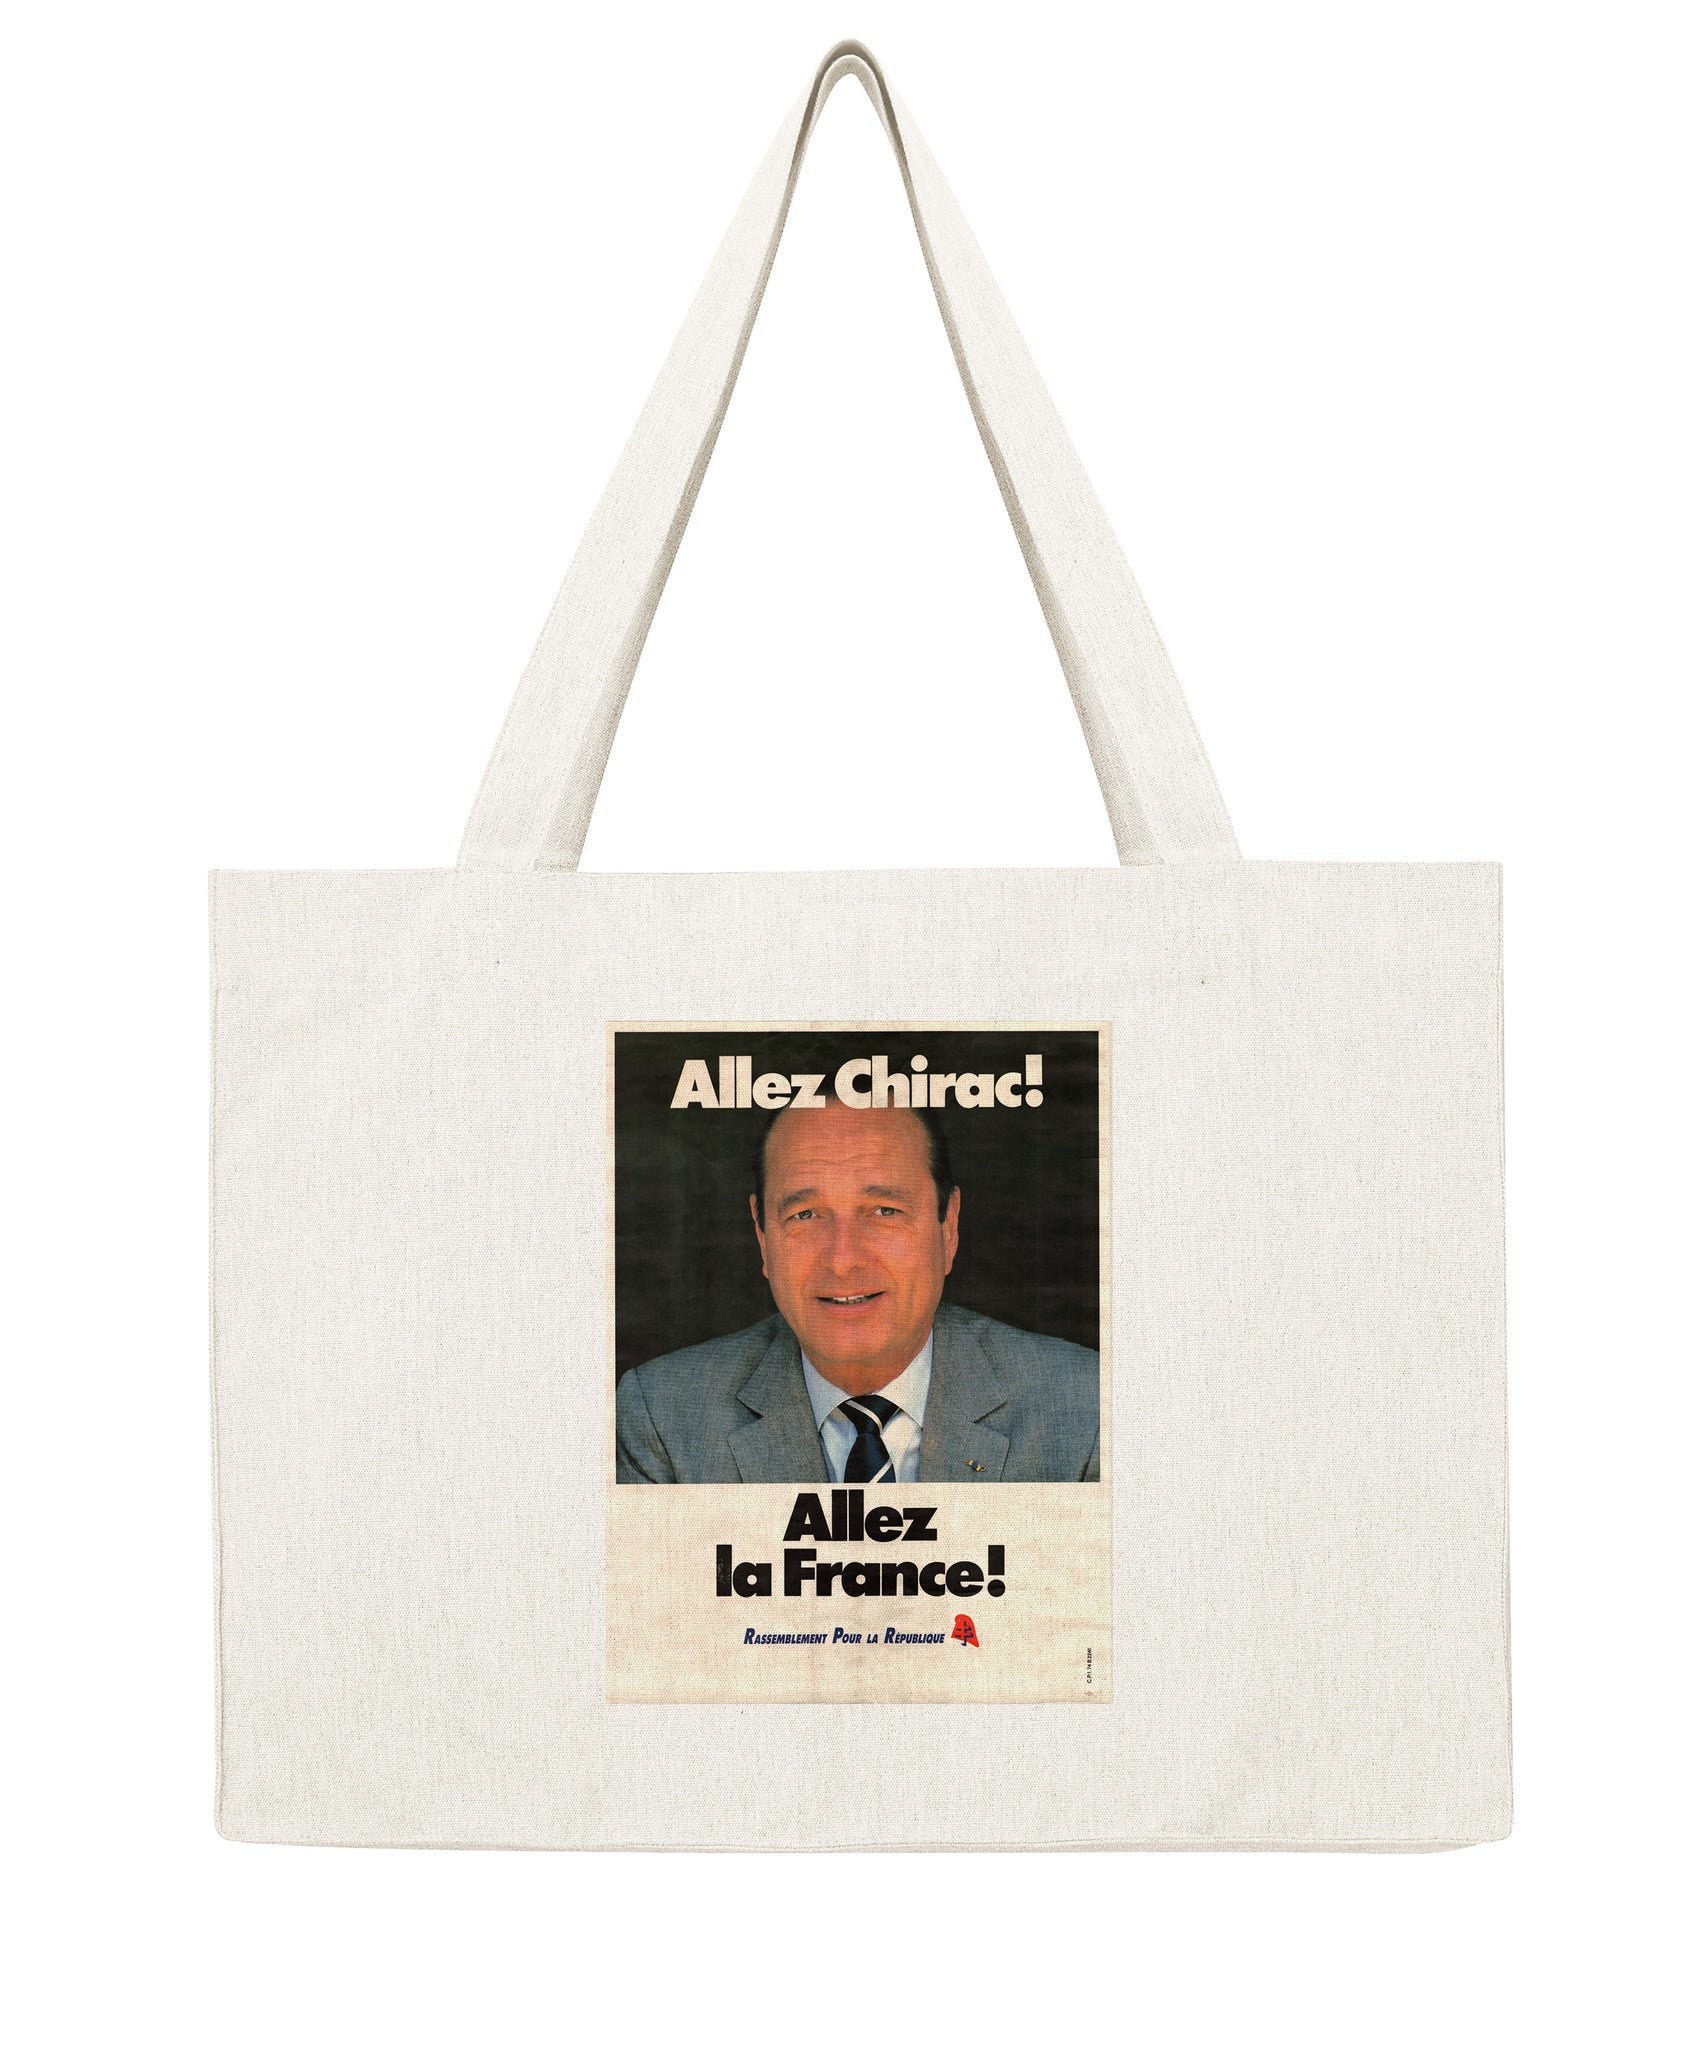 Chirac Allez la France - Shopping bag-Sacs-Atelier Amelot